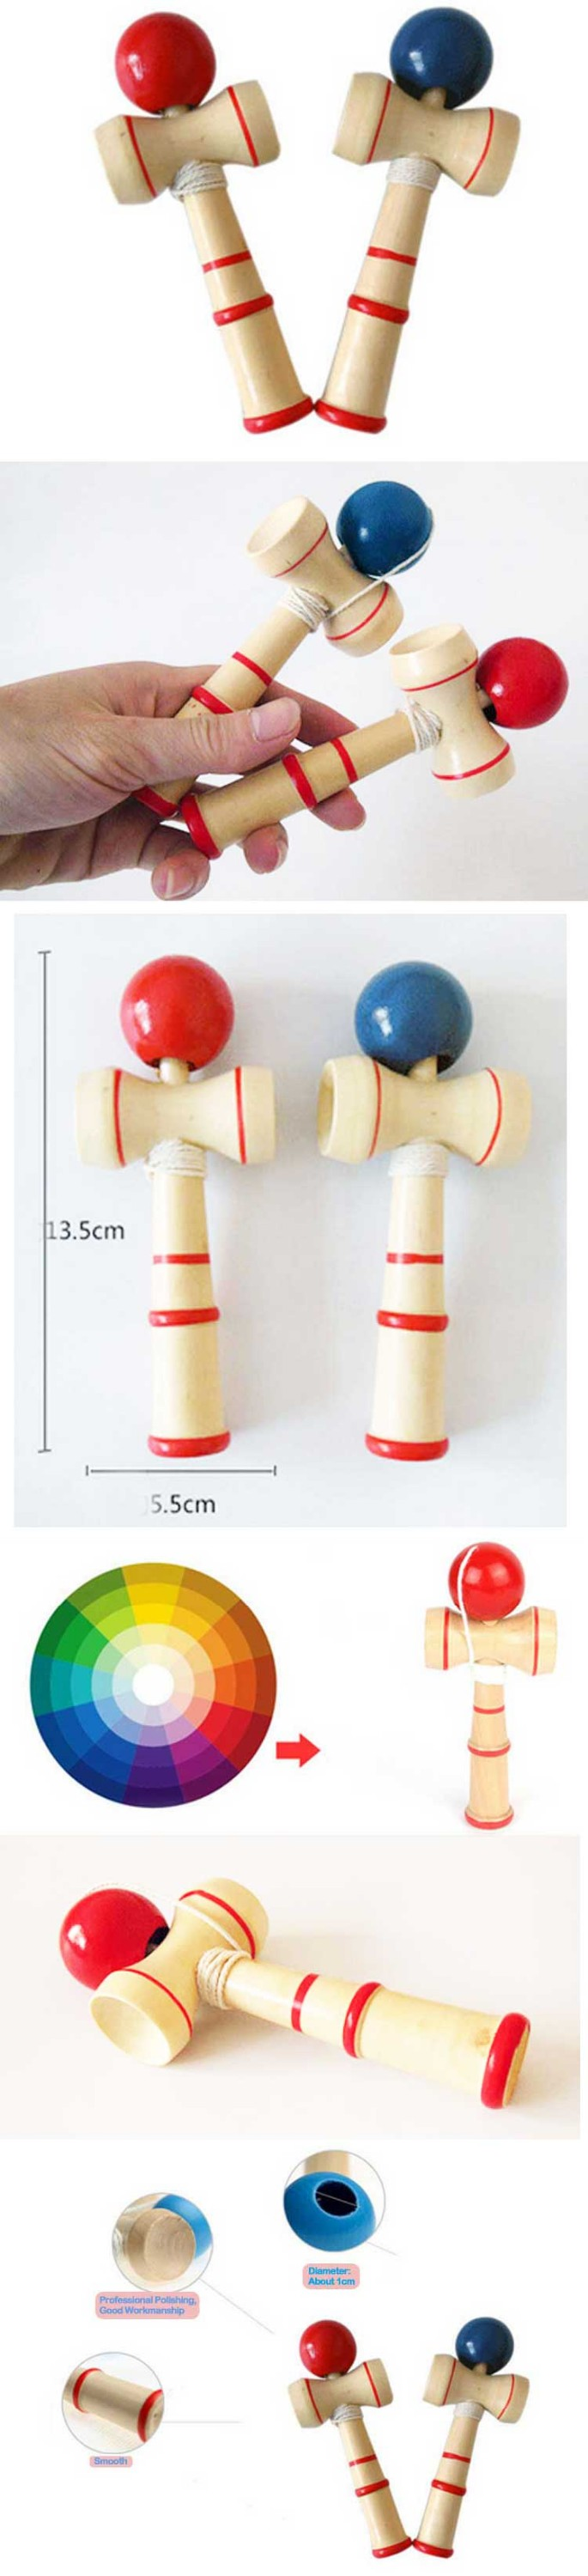 Wholesale 2016 Painted Wooden Kendama Ball Funny Wooden Toys kids toys